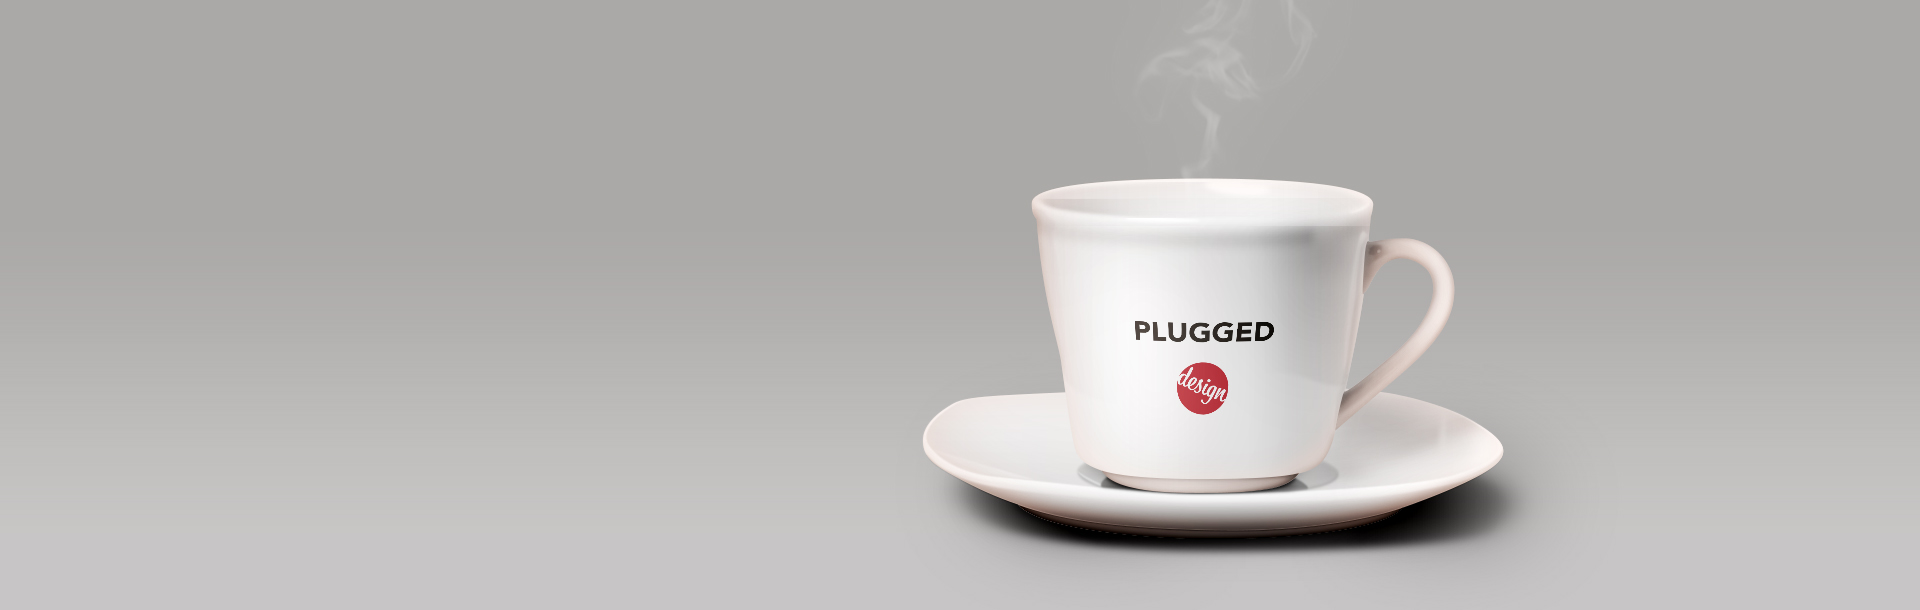 plugged_coffee